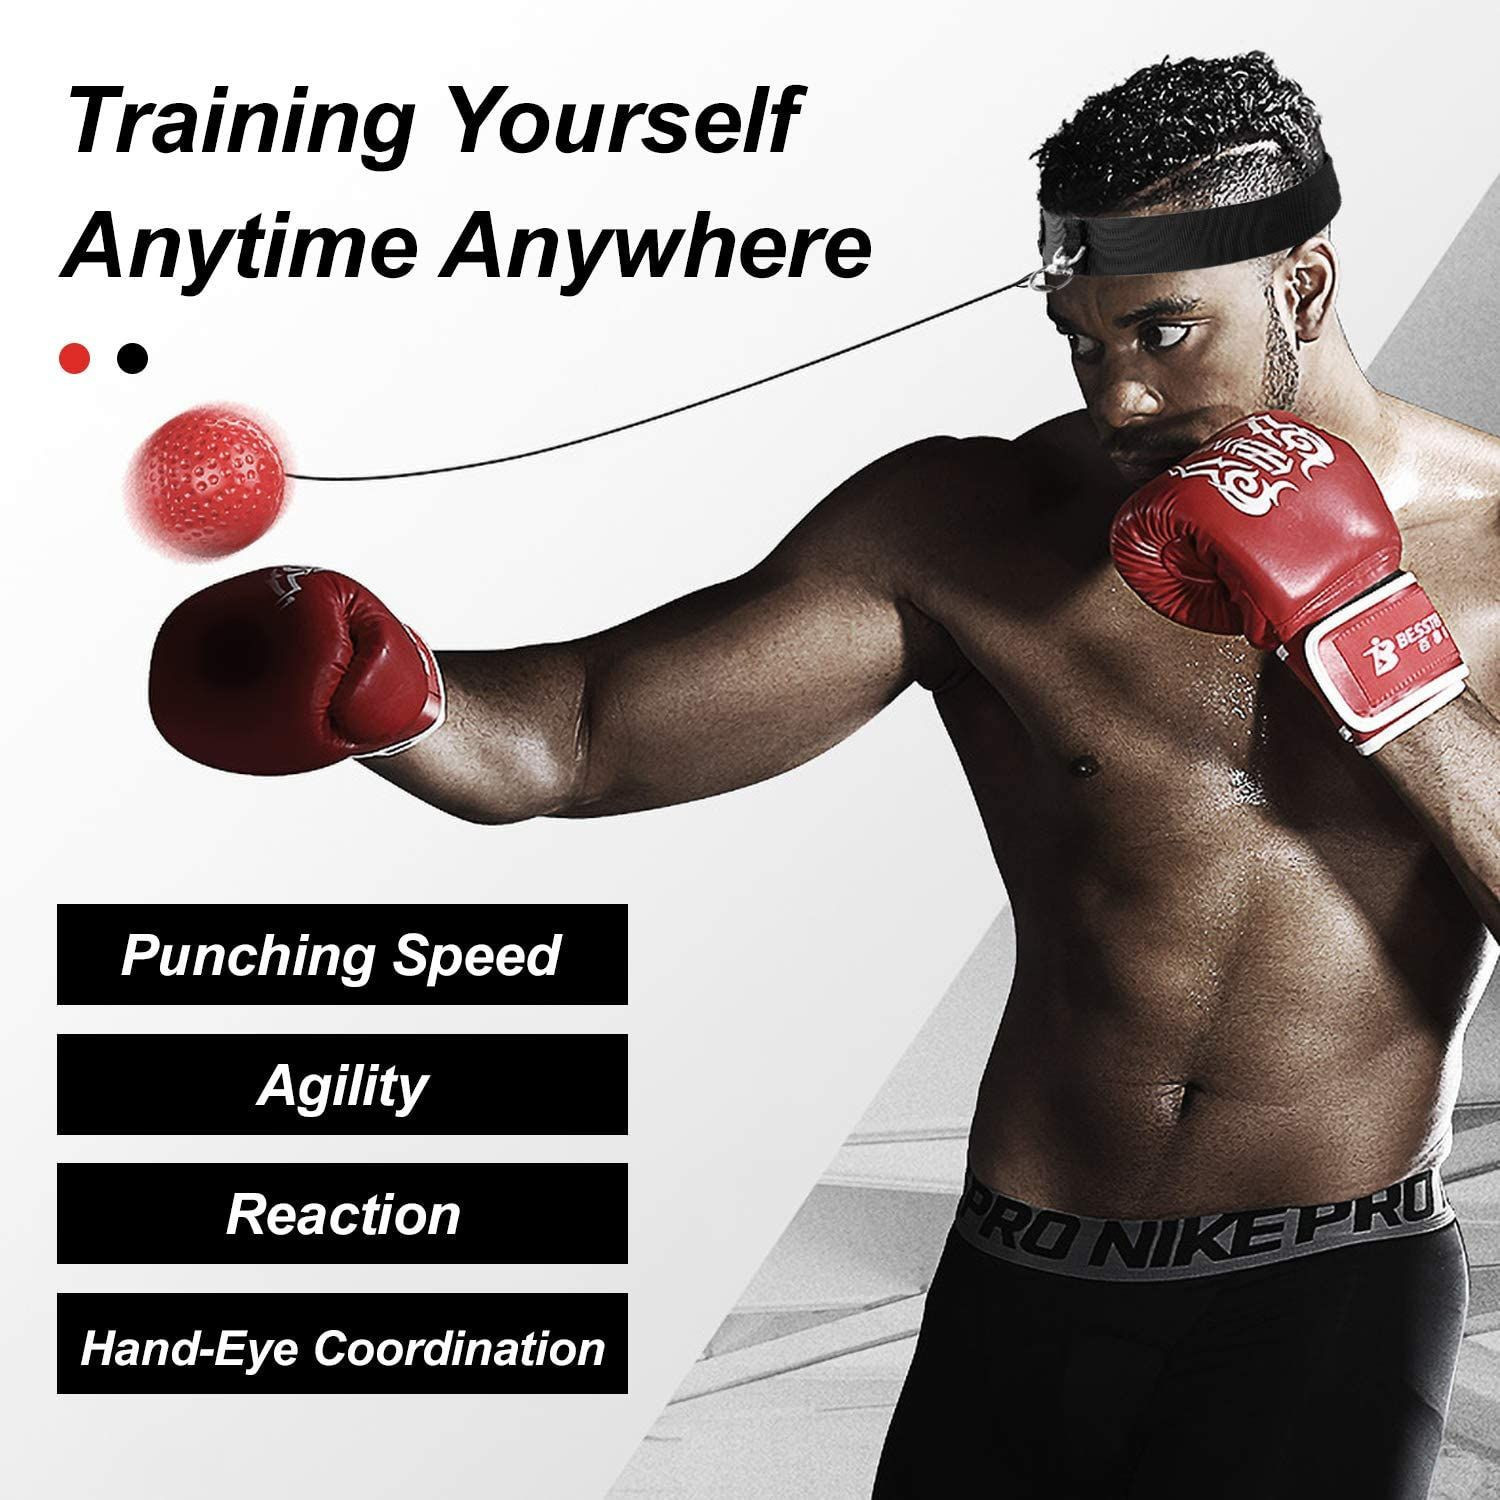 Boxing reflective ball set training ball on the rope hand-eye coordination training